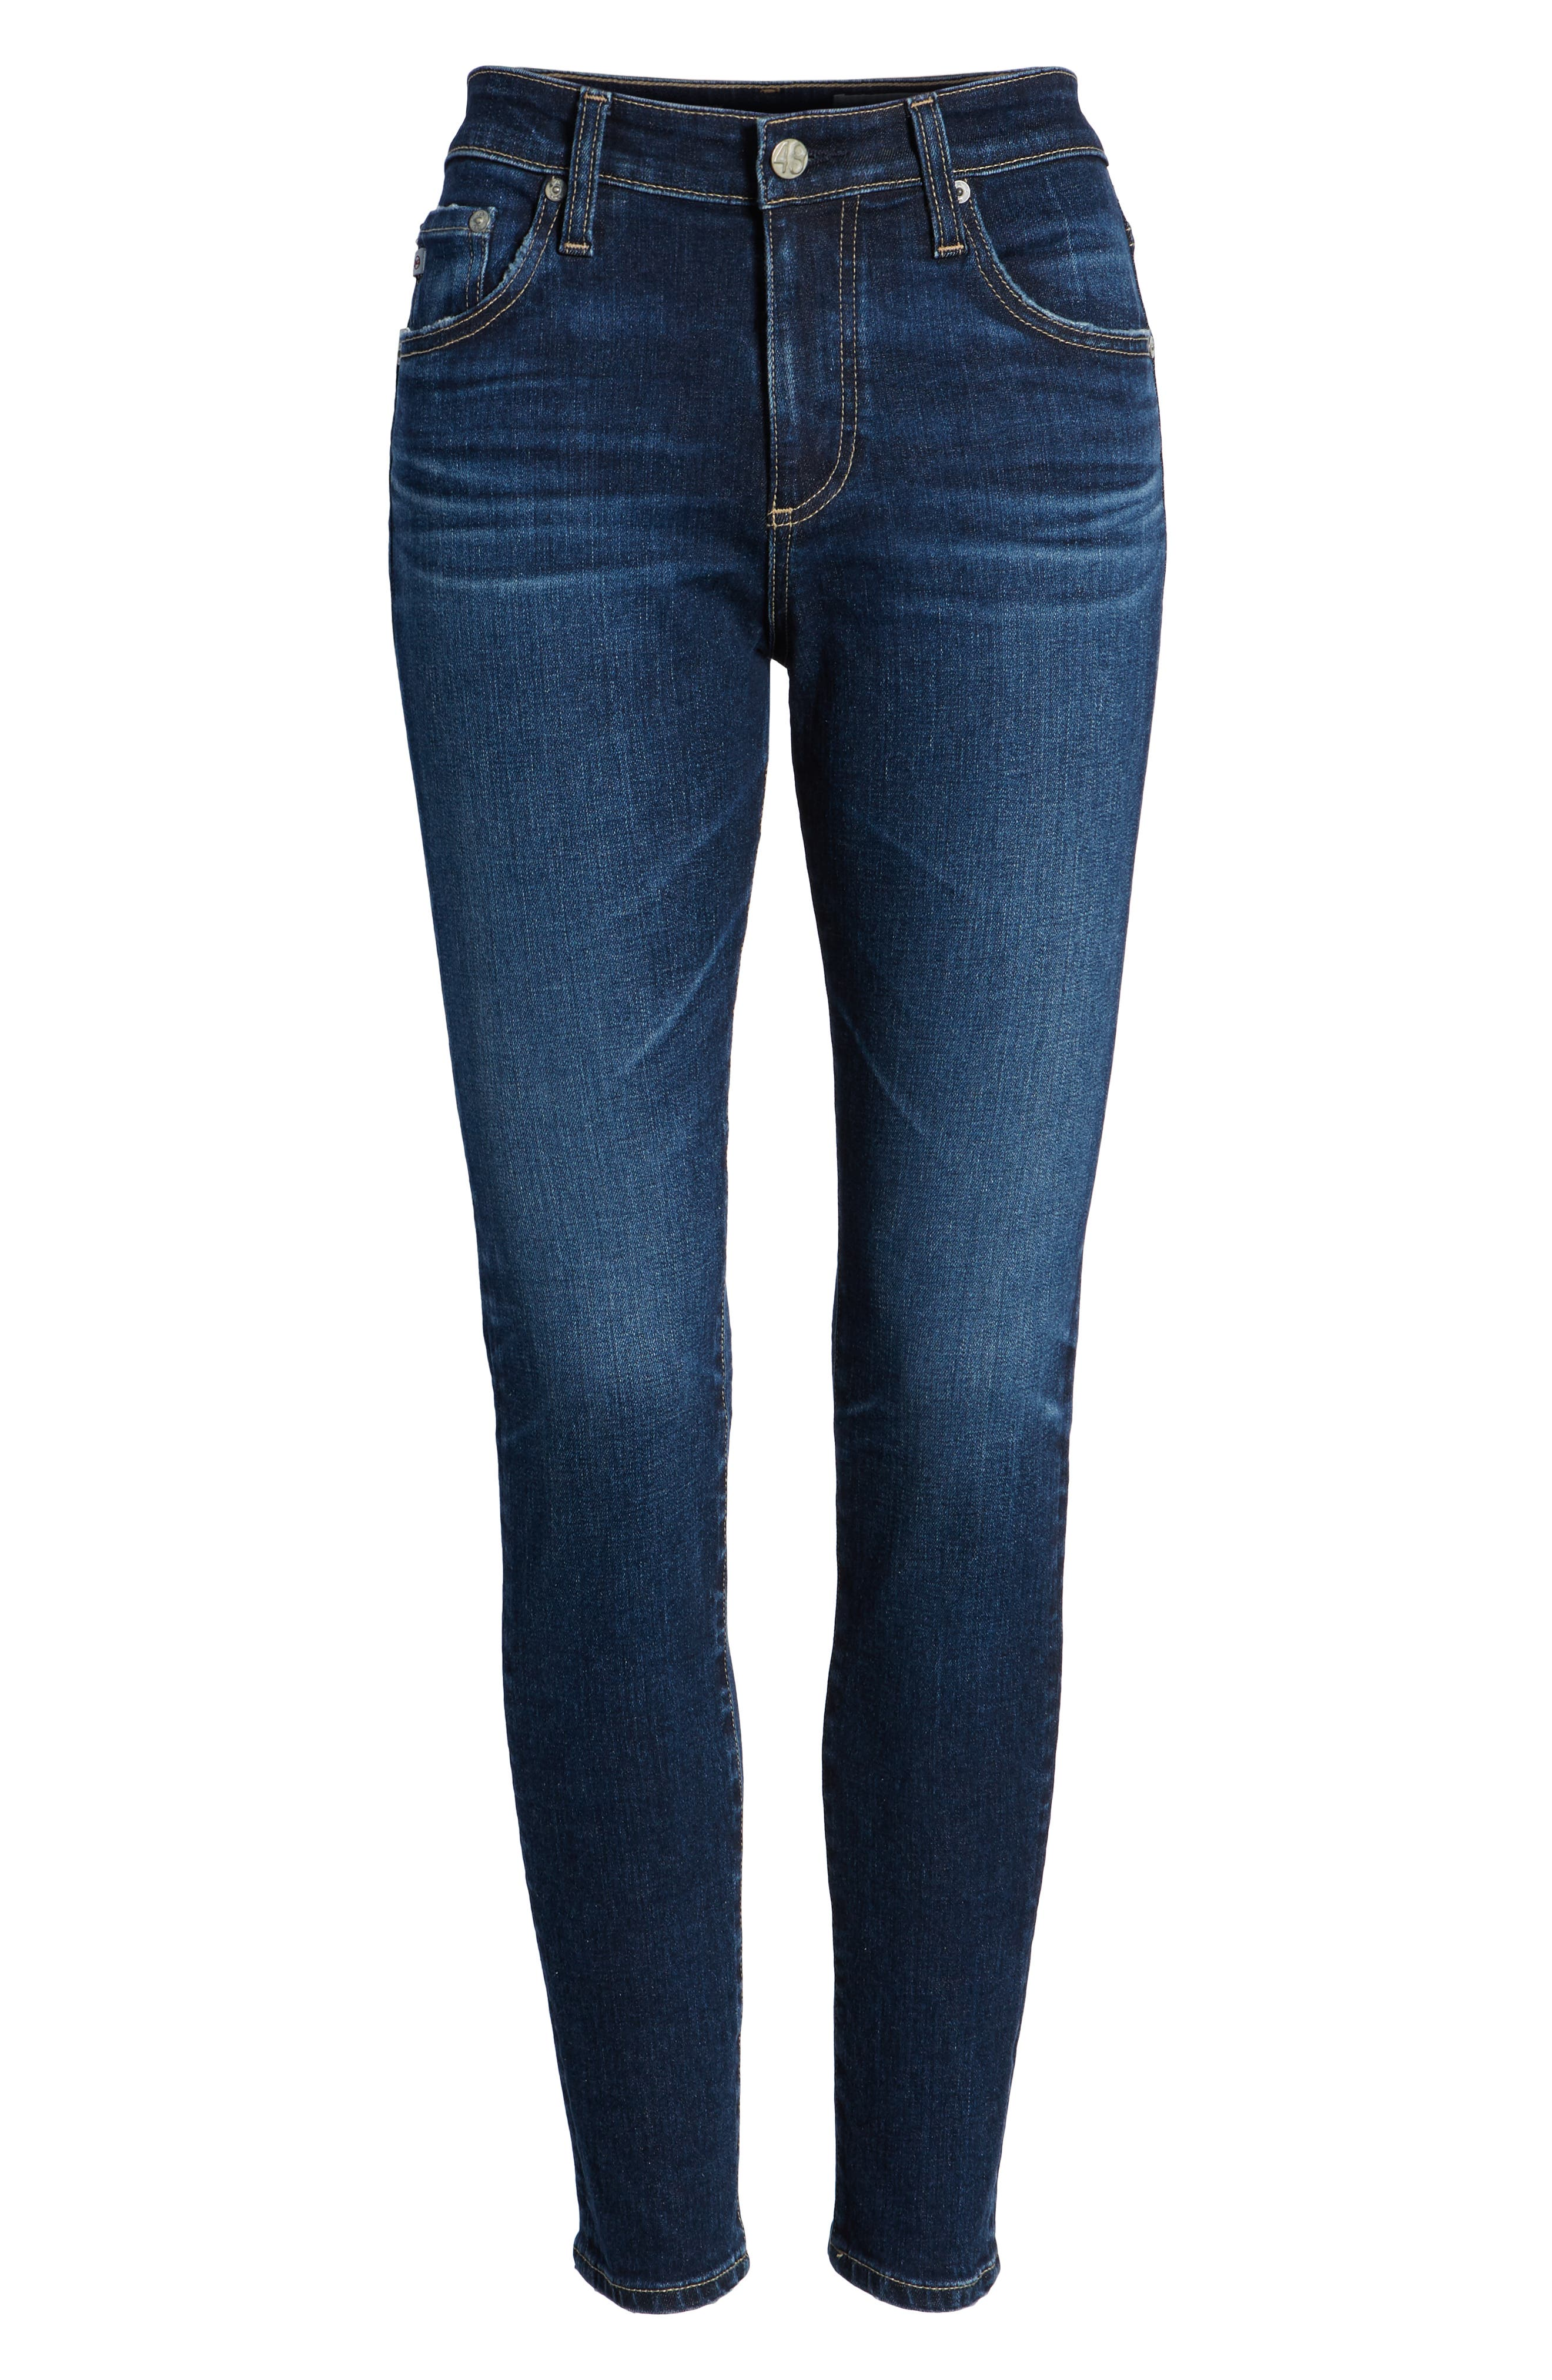 The Farrah Ankle Skinny Jeans,                             Alternate thumbnail 6, color,                             07 YEARS ASTRO AZURE